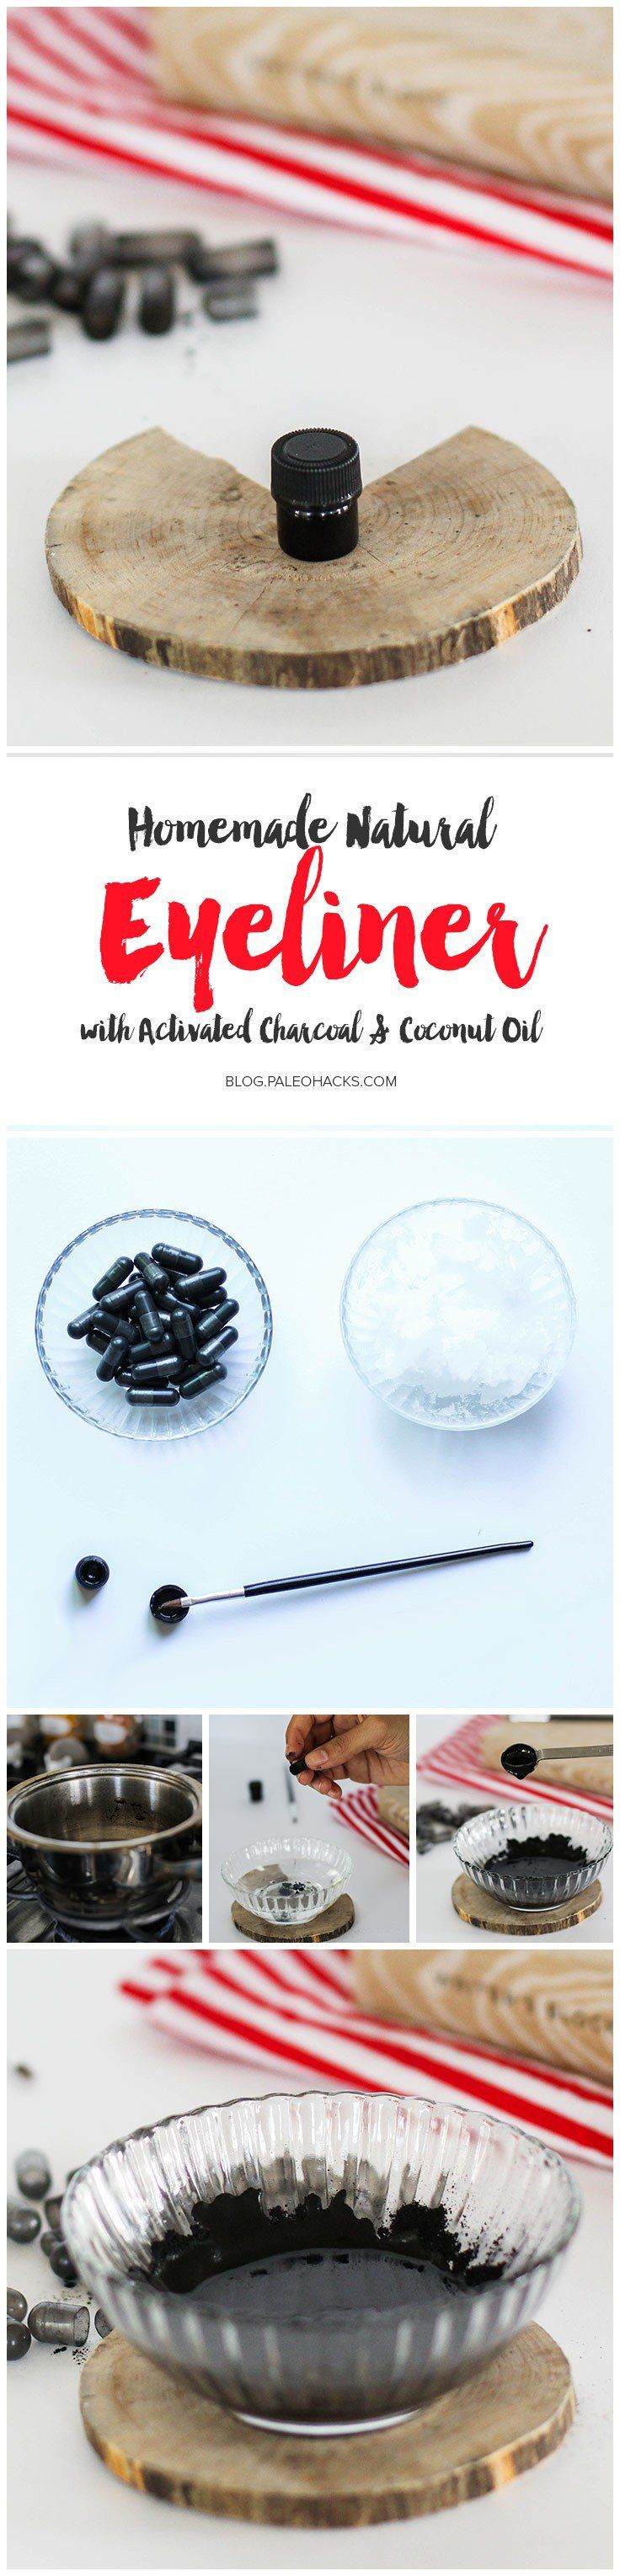 This simple, natural eyeliner is made of activated charcoal that's free of icky toxins. The best part: it'll stay put throughout your day, and it won't smudge! Get the recipe here: http://paleo.co/naturaleyeliner